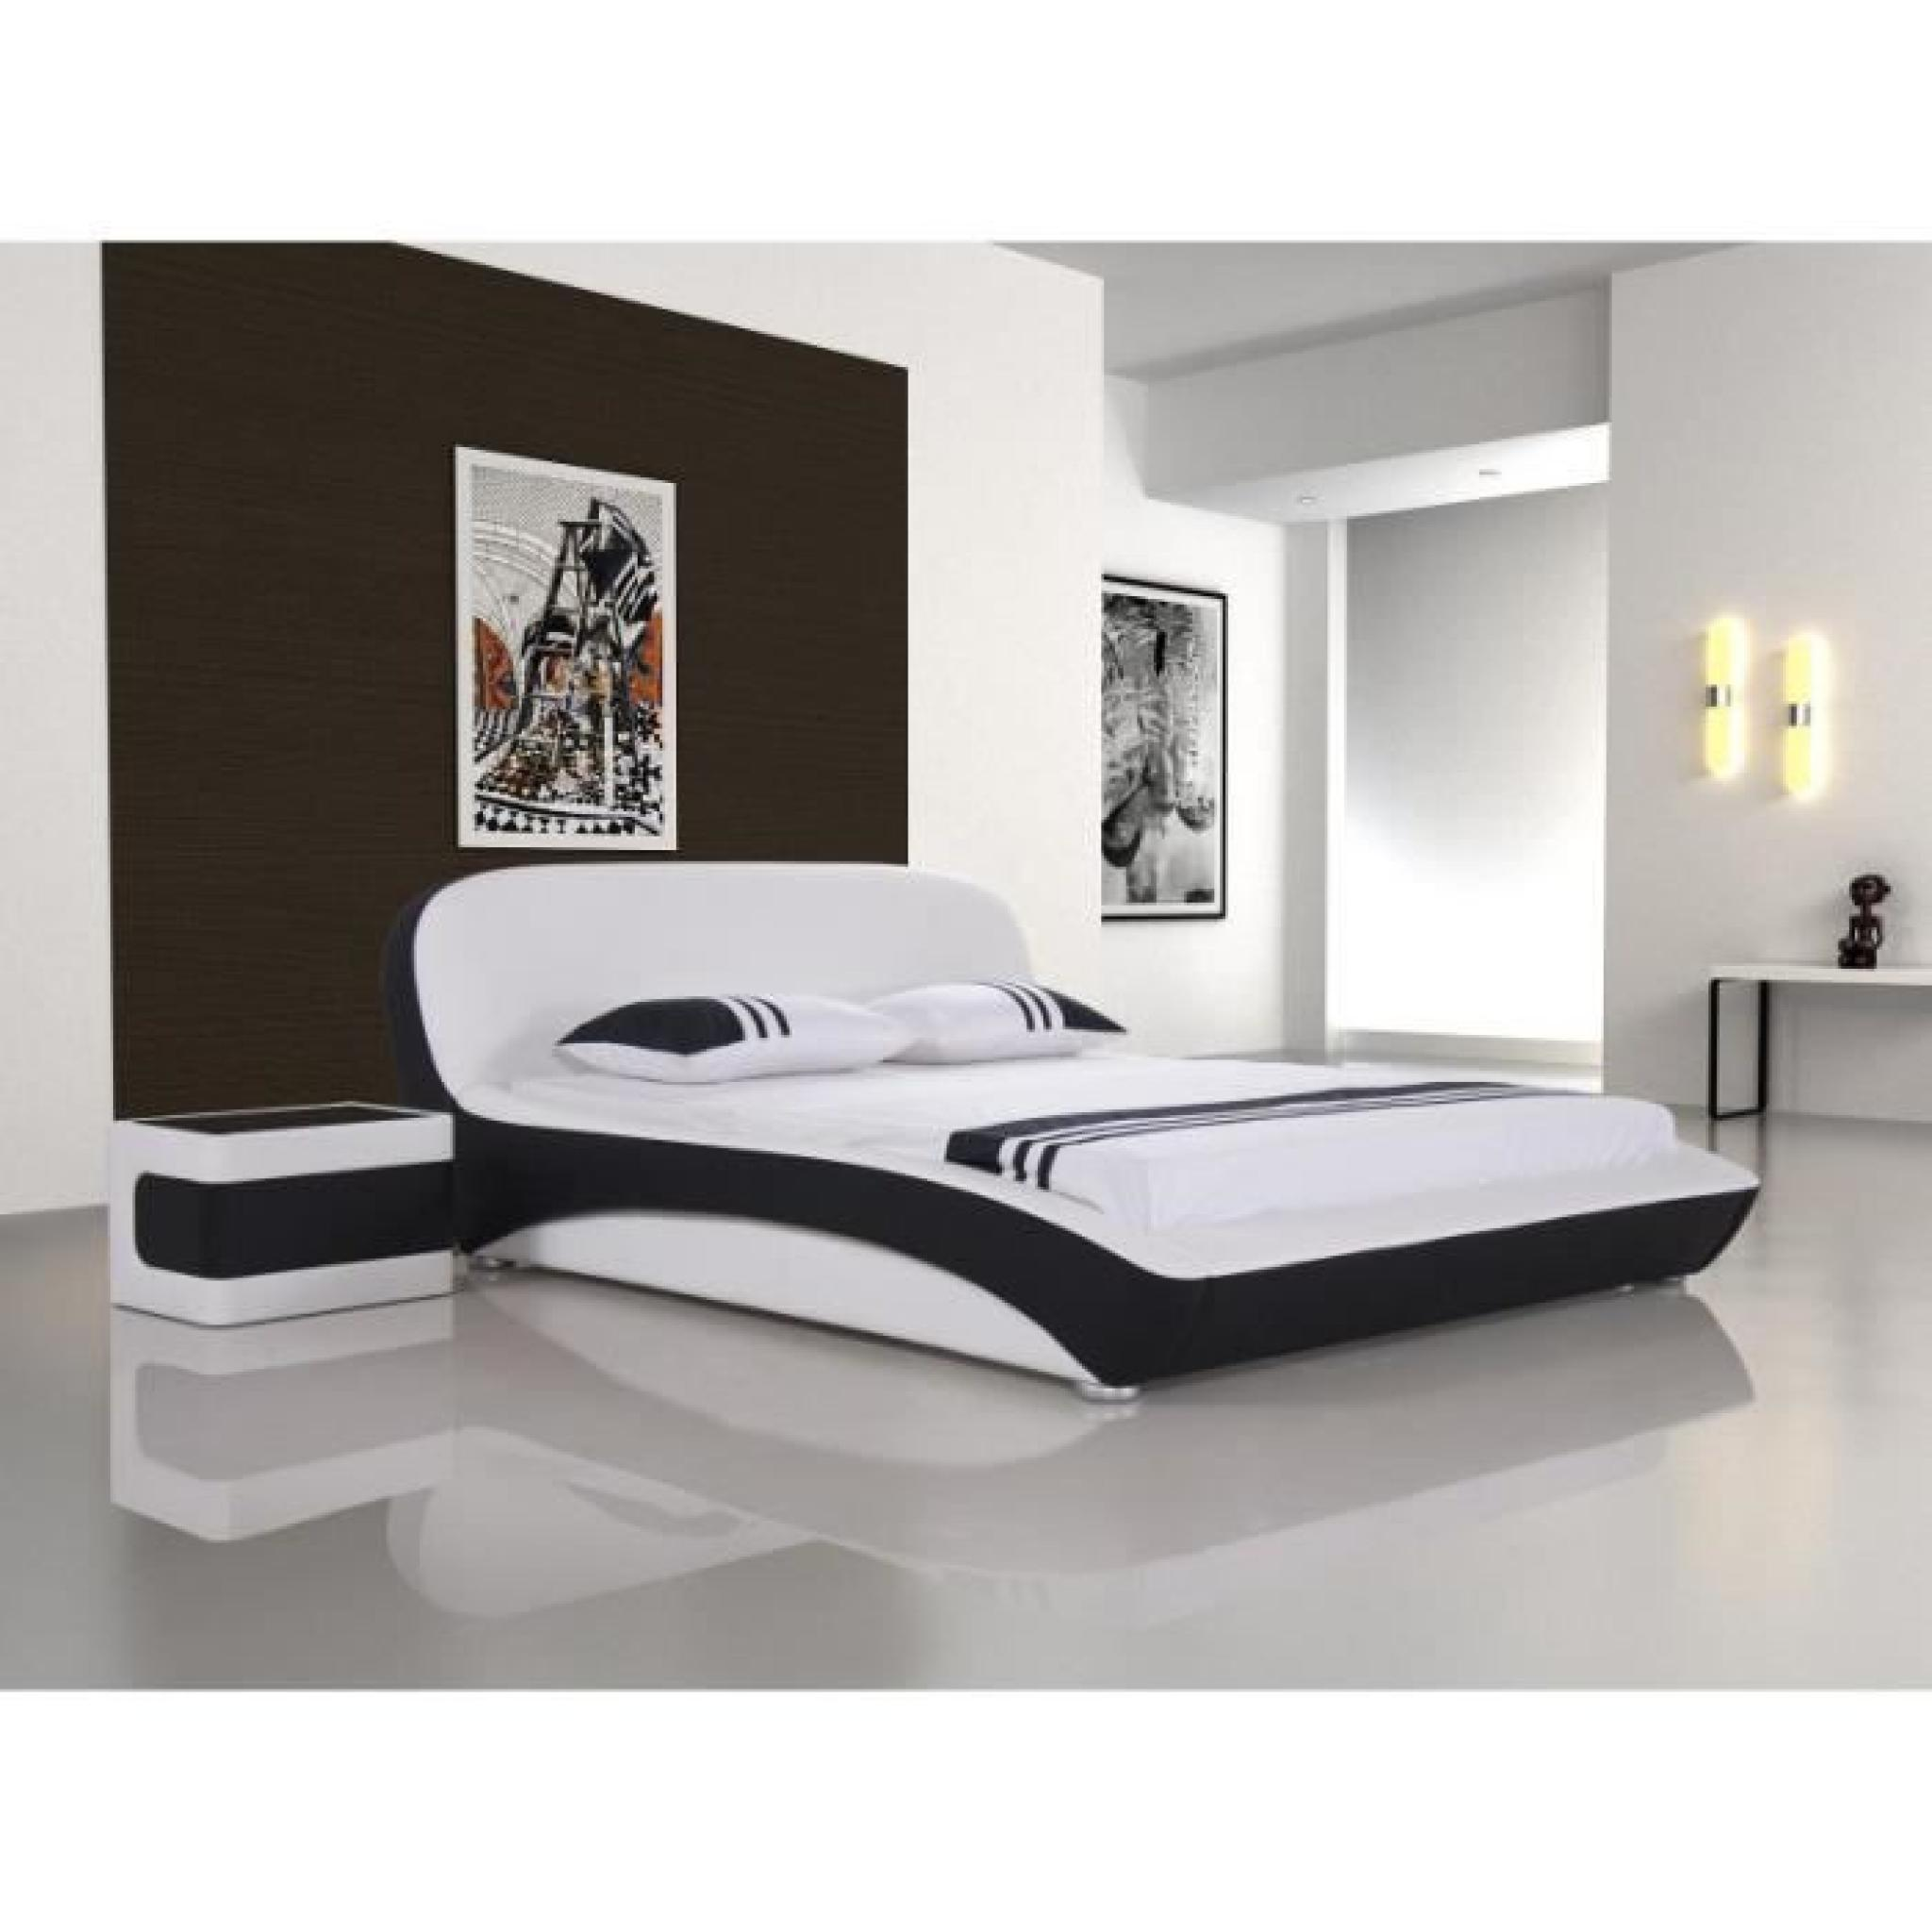 justhome lara 1 blanc lit rembourr en cuir cologique taille 180 x 200 cm achat vente lit. Black Bedroom Furniture Sets. Home Design Ideas